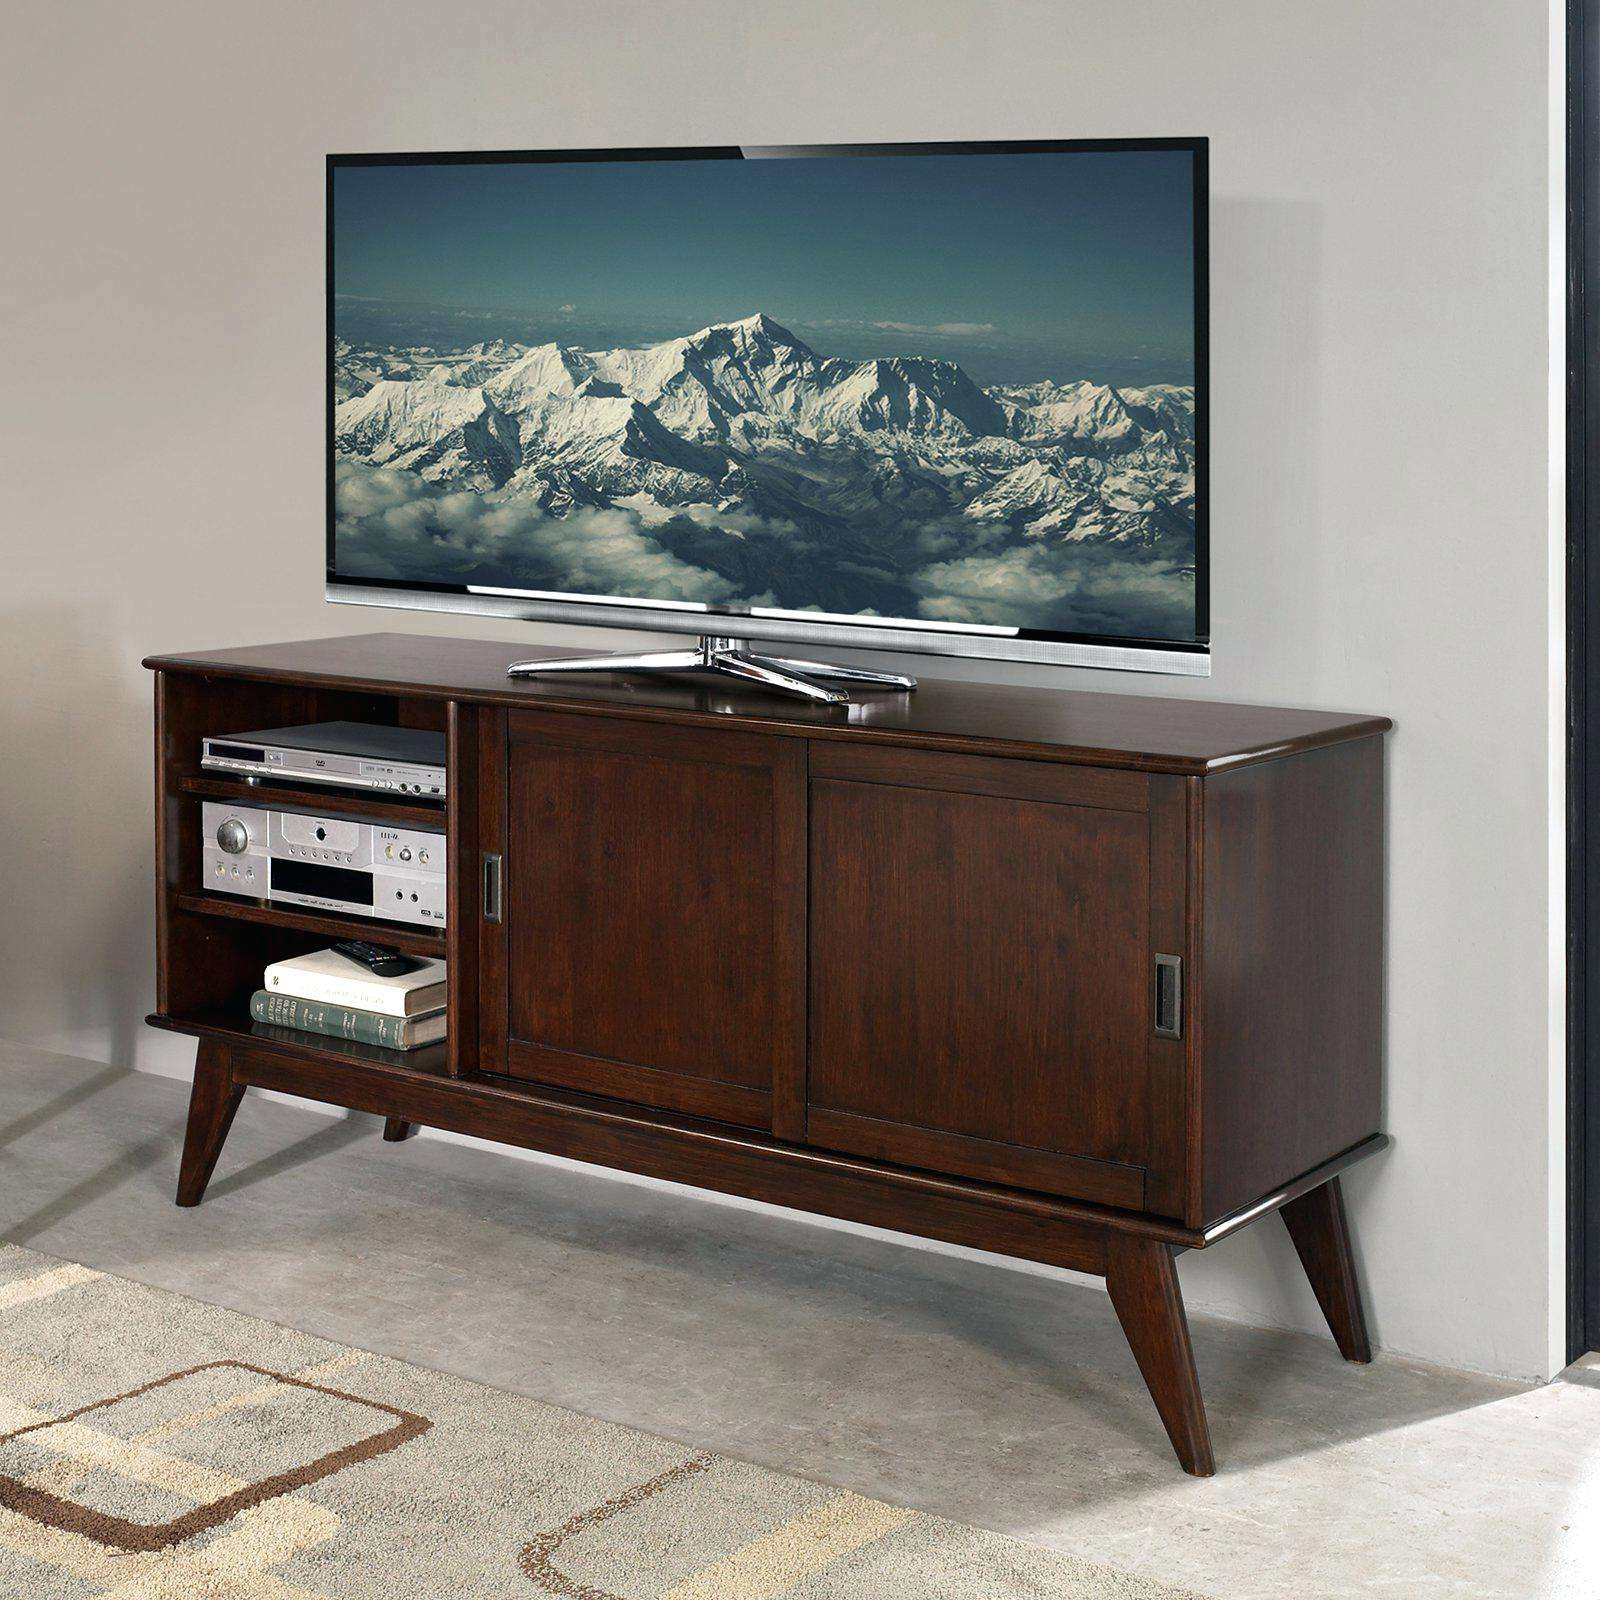 Tv Stand: Hokku Design Tv Stand (View 12 of 15)